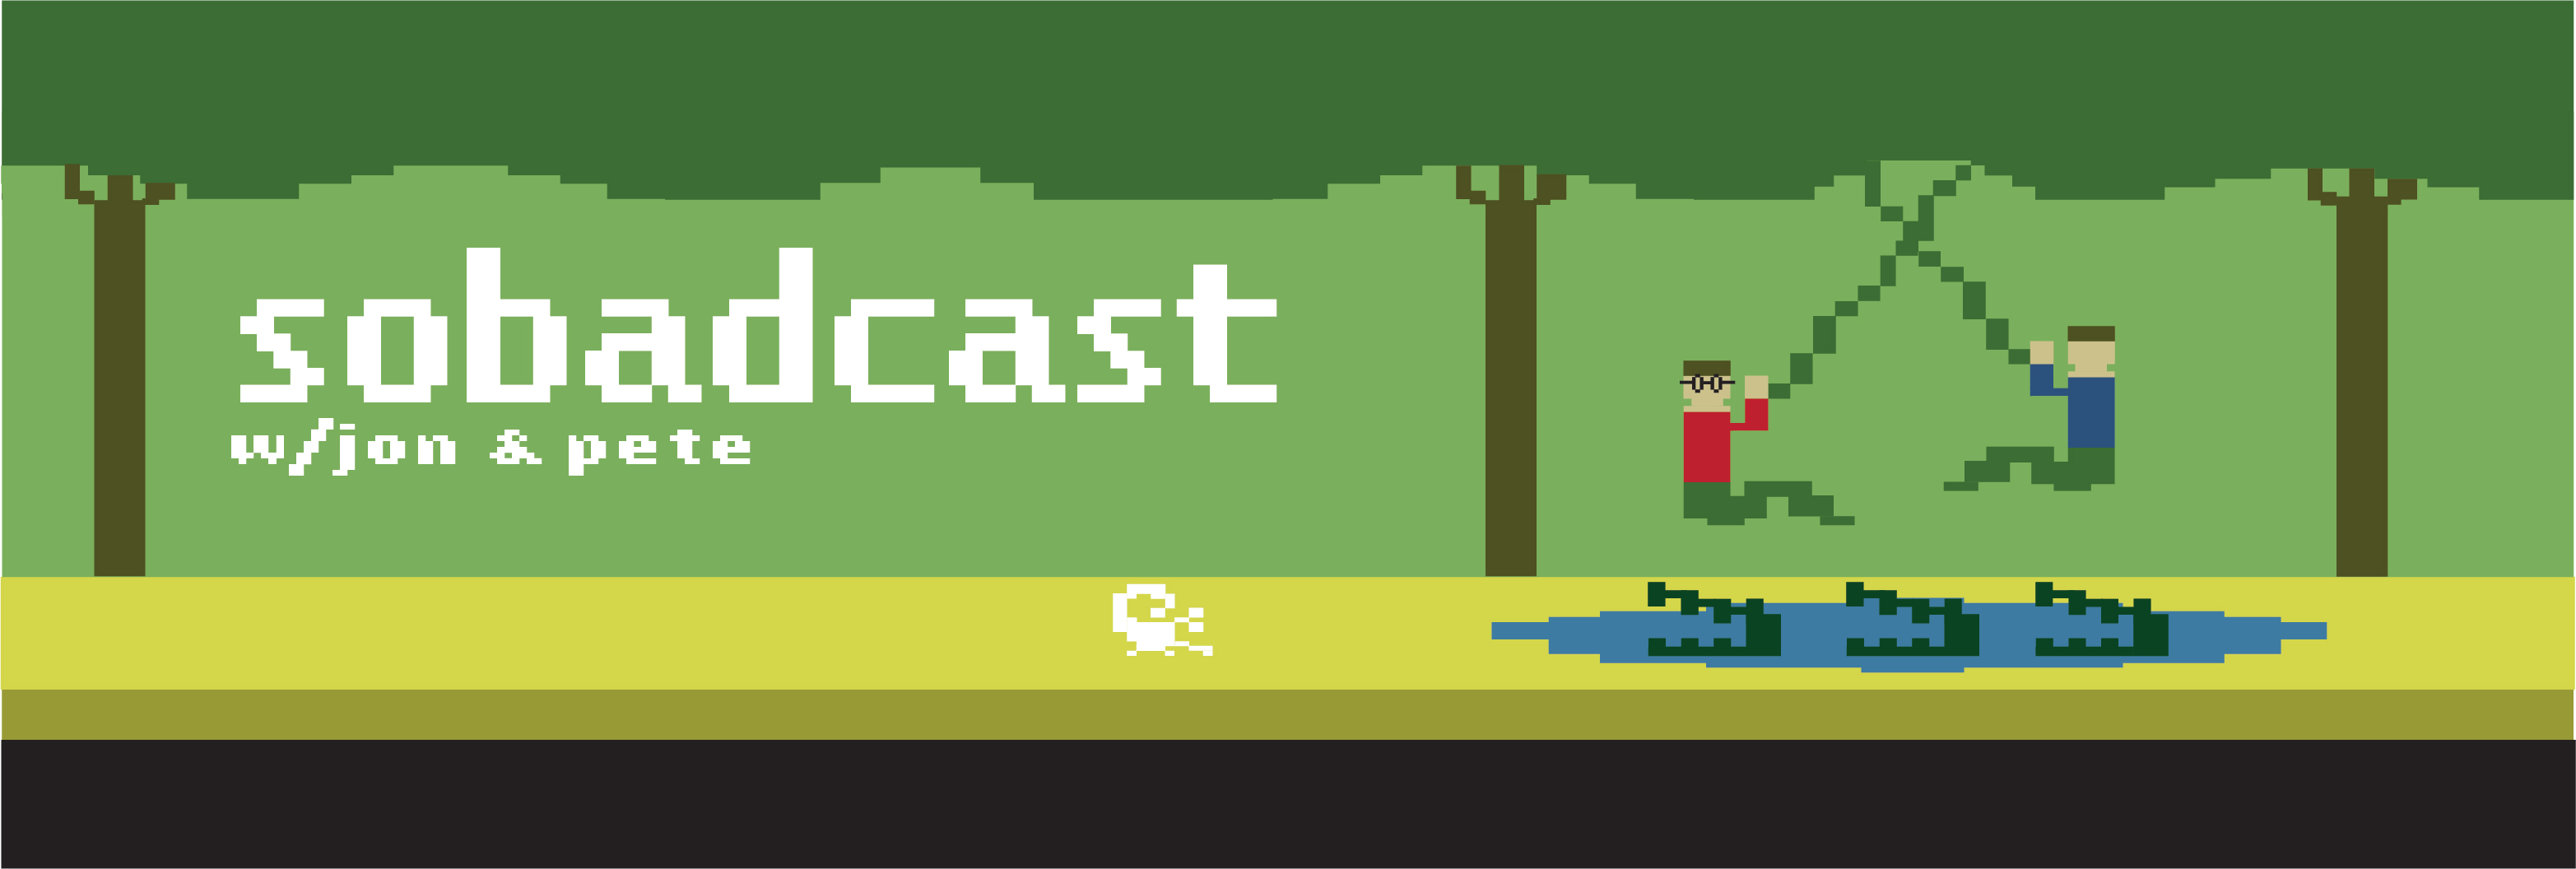 sobadcast_pitfall2_1500x500